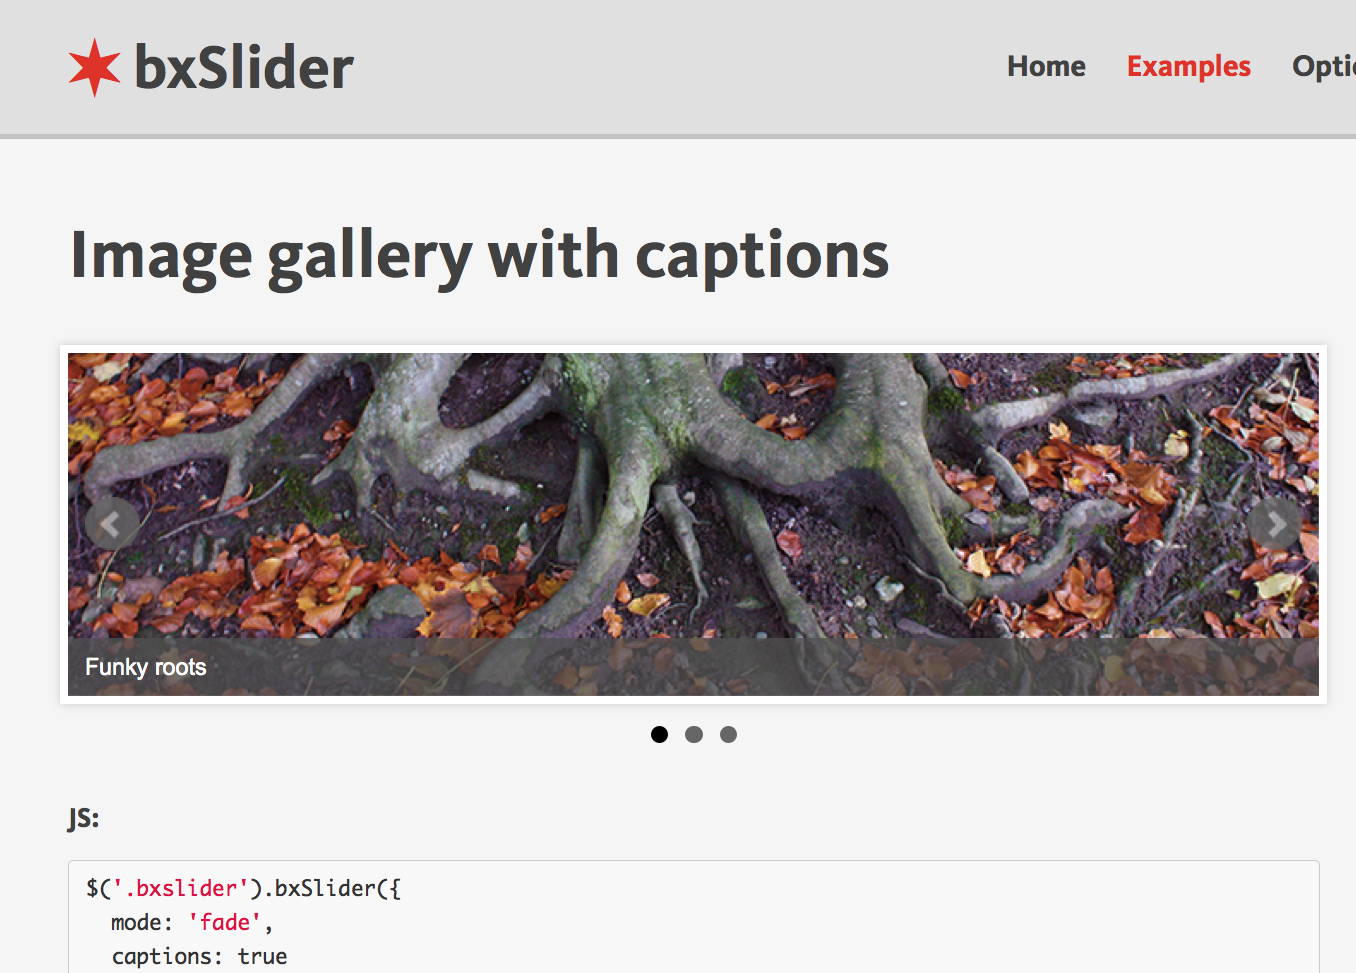 Learn how to use the bxSlider jQuery plug-in to install and